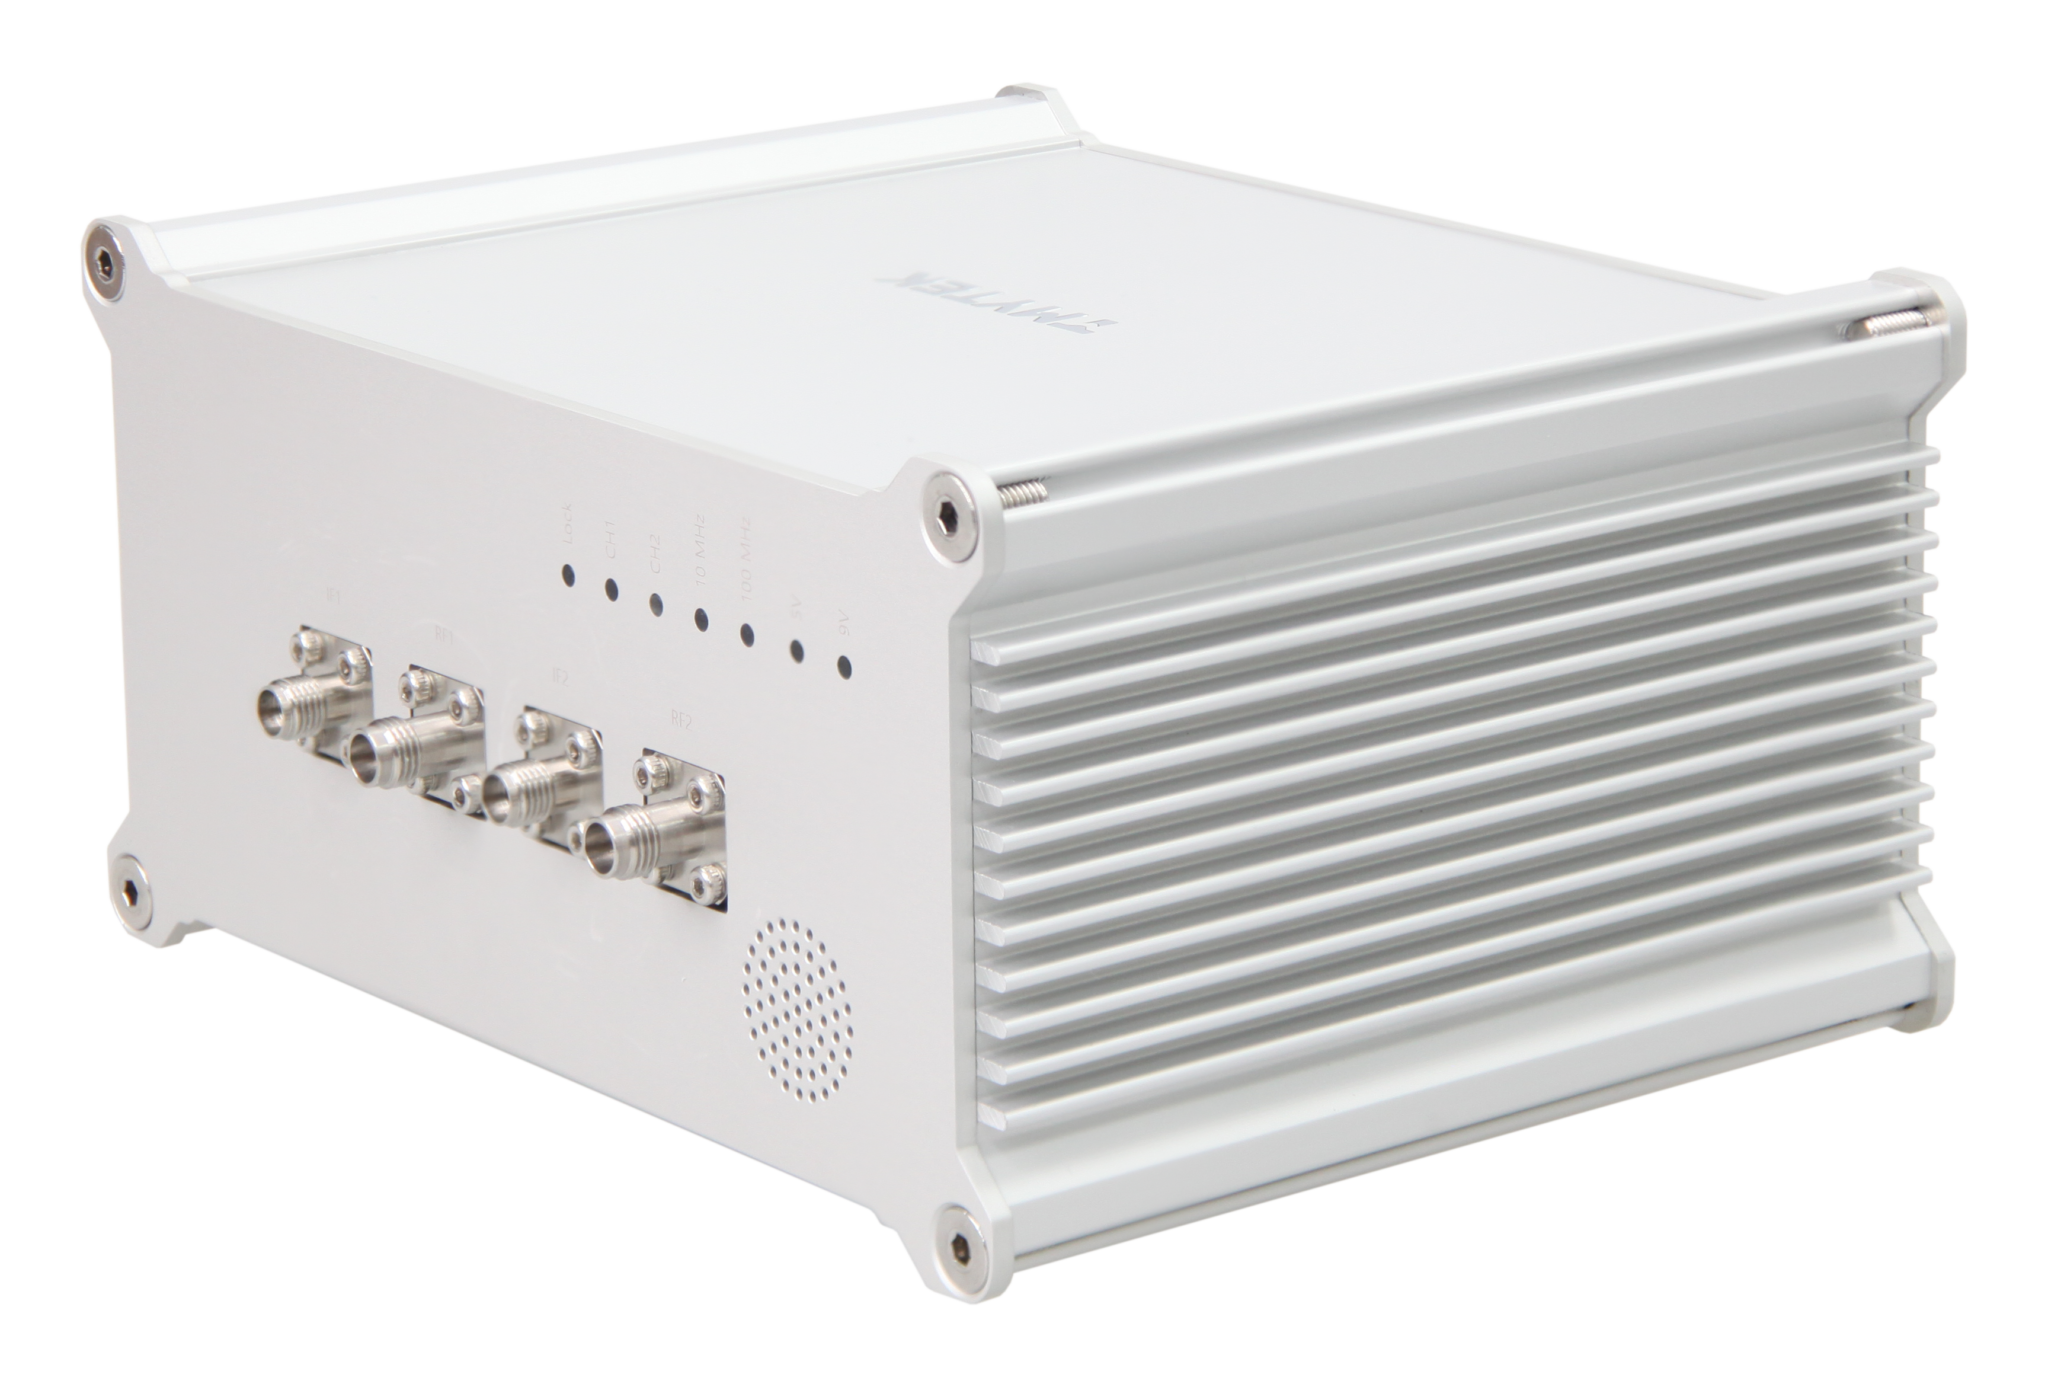 Dual Channel UD Box – Extend your RF test equipment to 5G mmWave economically